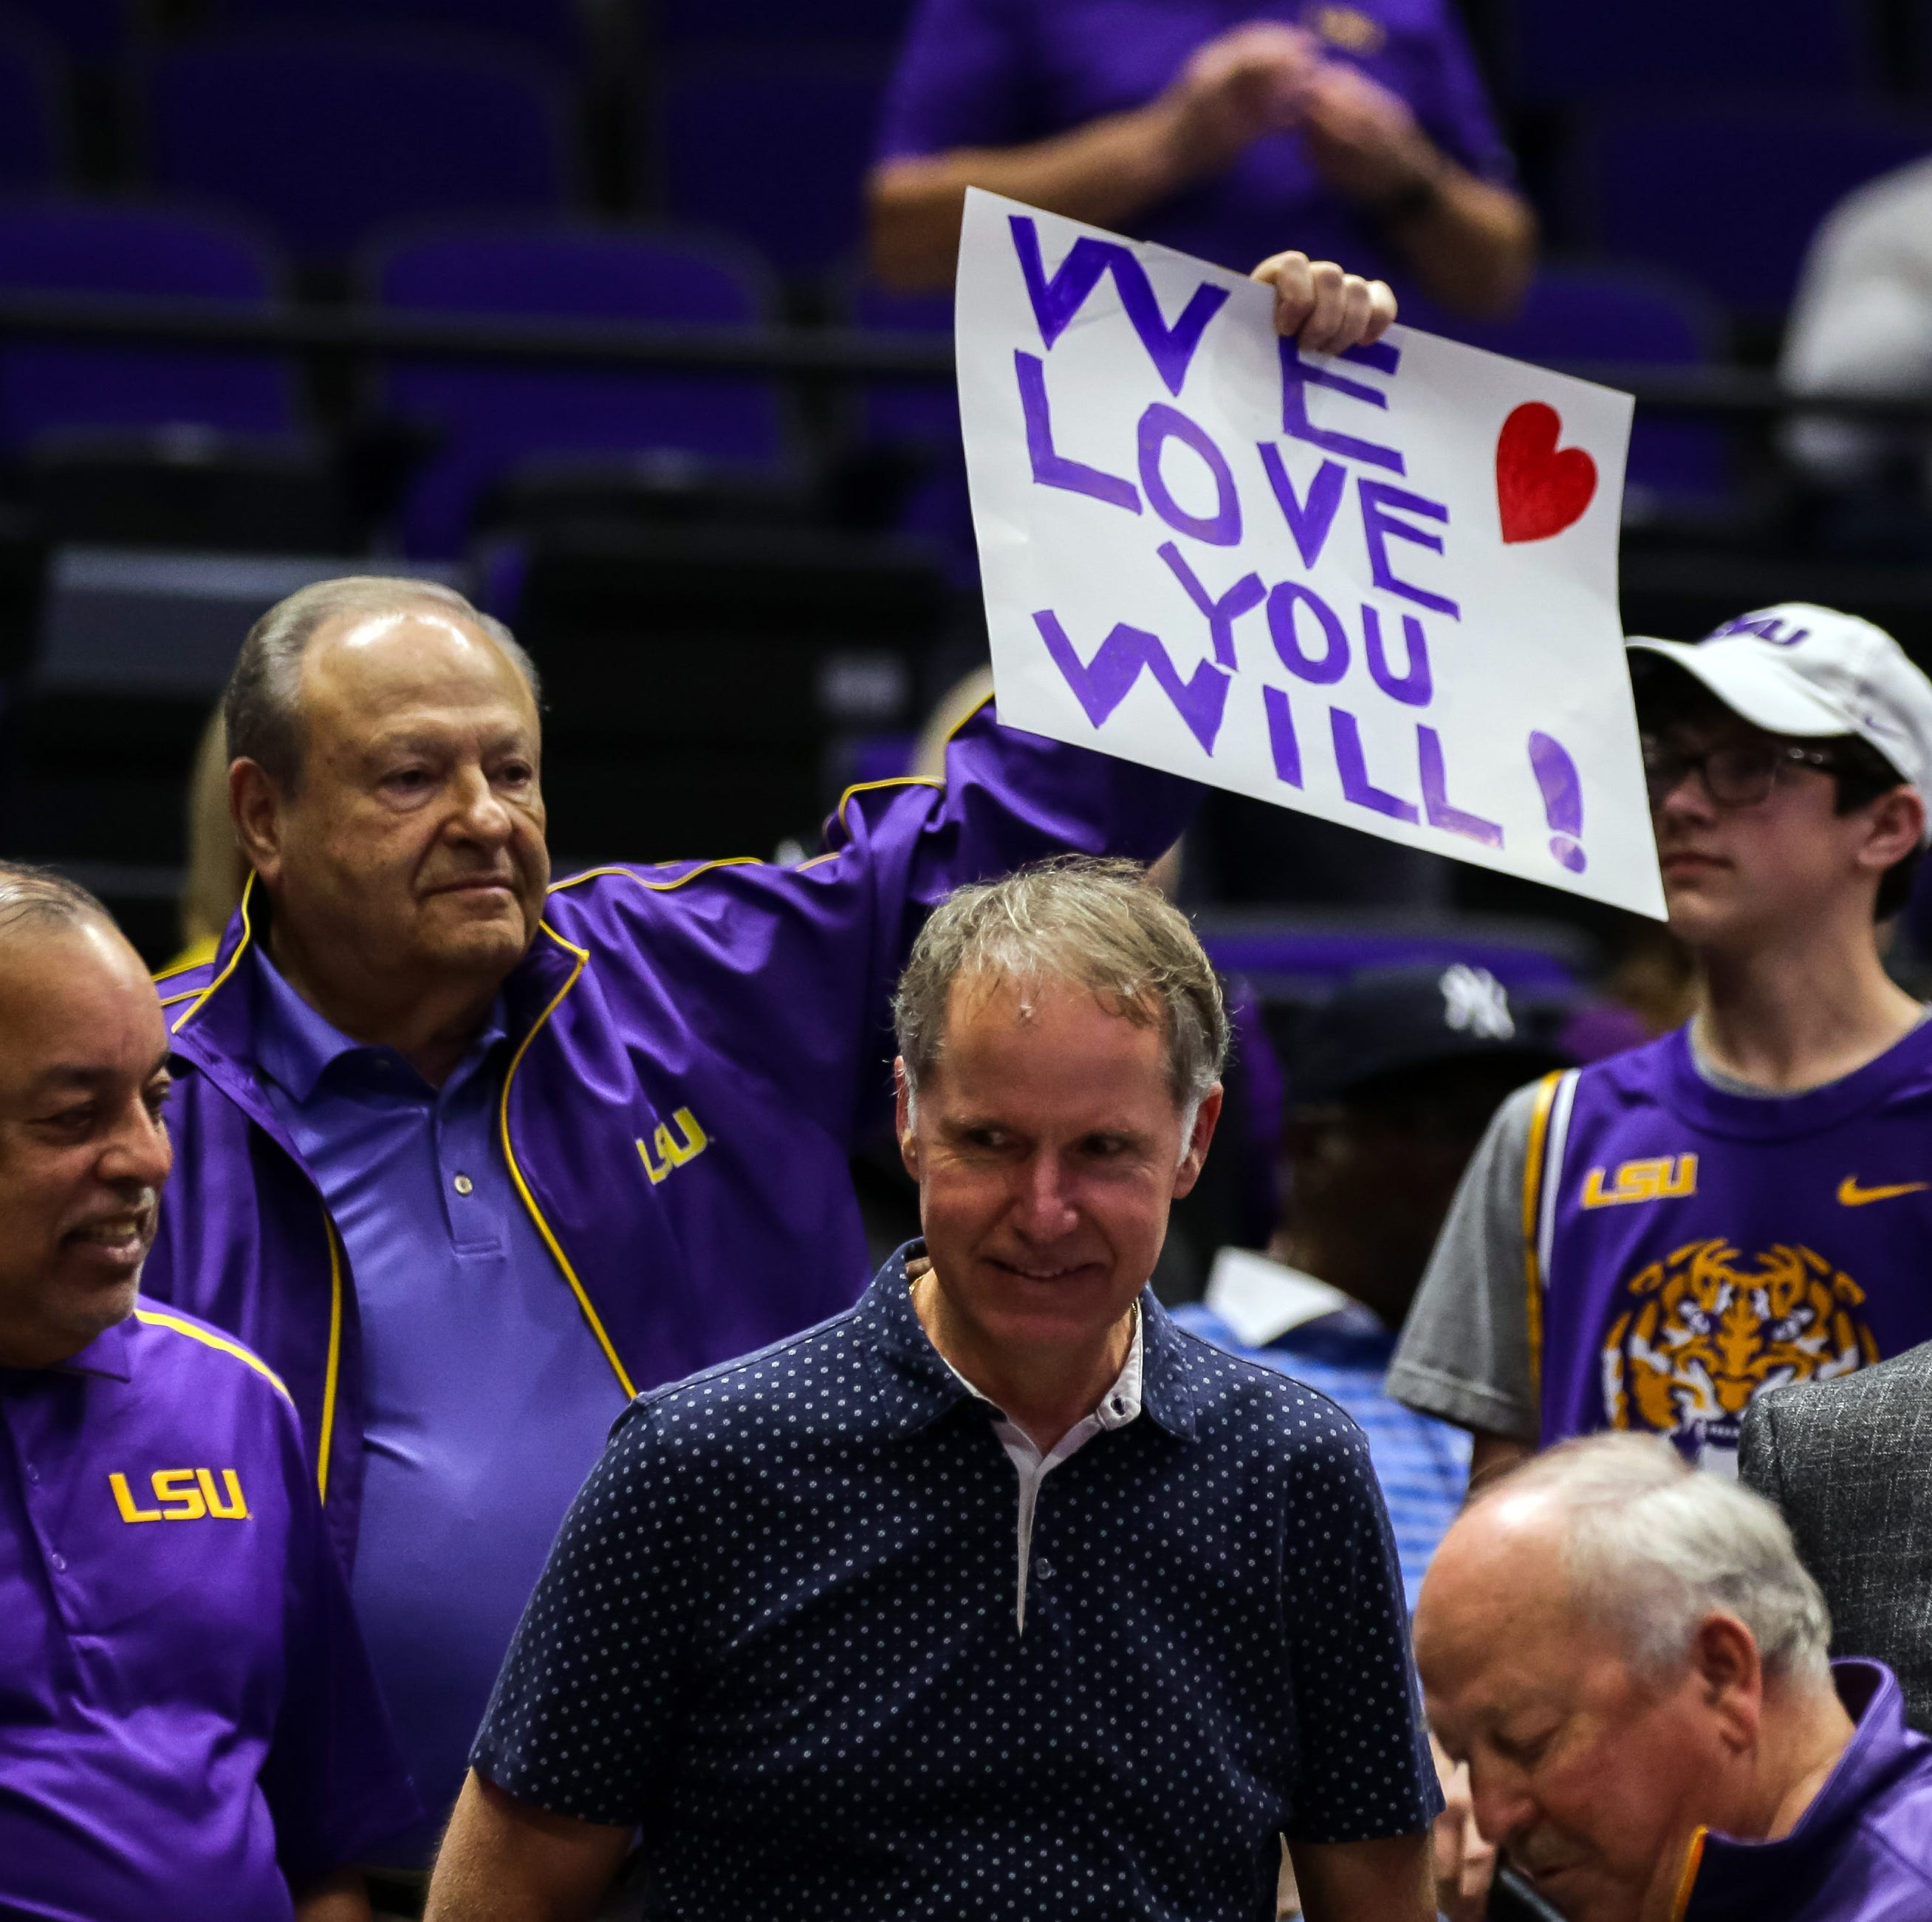 Will Wade wants to return as LSU coach but is declining to meet with school officials, per advice of lawyer